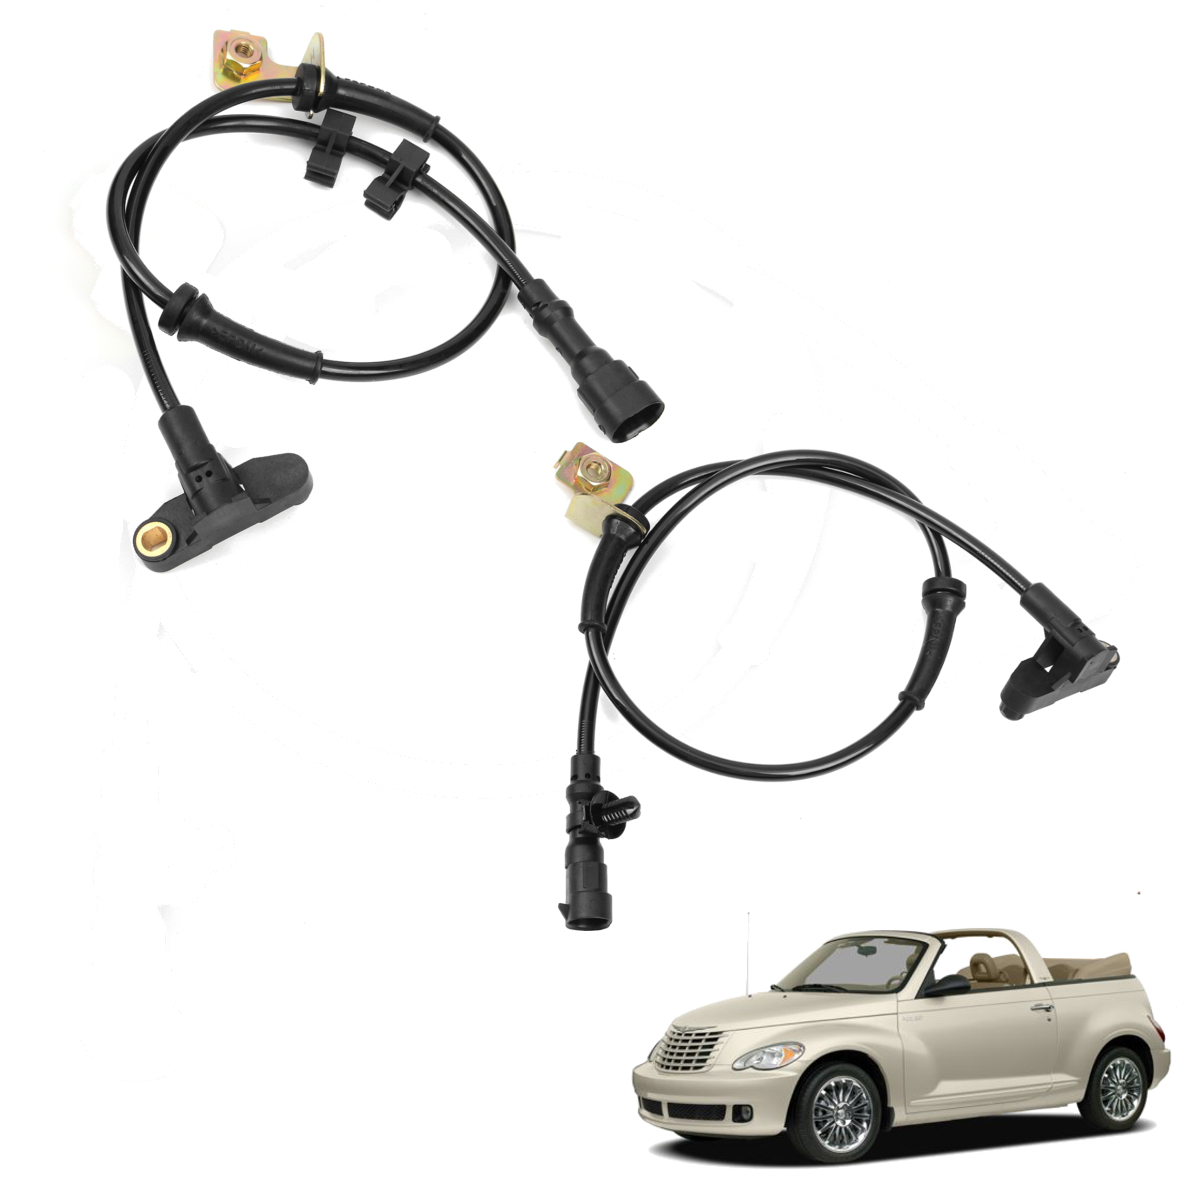 Car Front Left Right ABS Wheel Speed Sensor Transmission For CHRYSLER PT CRUISER 2000-2010 5273333AC 5273332AE Accessories